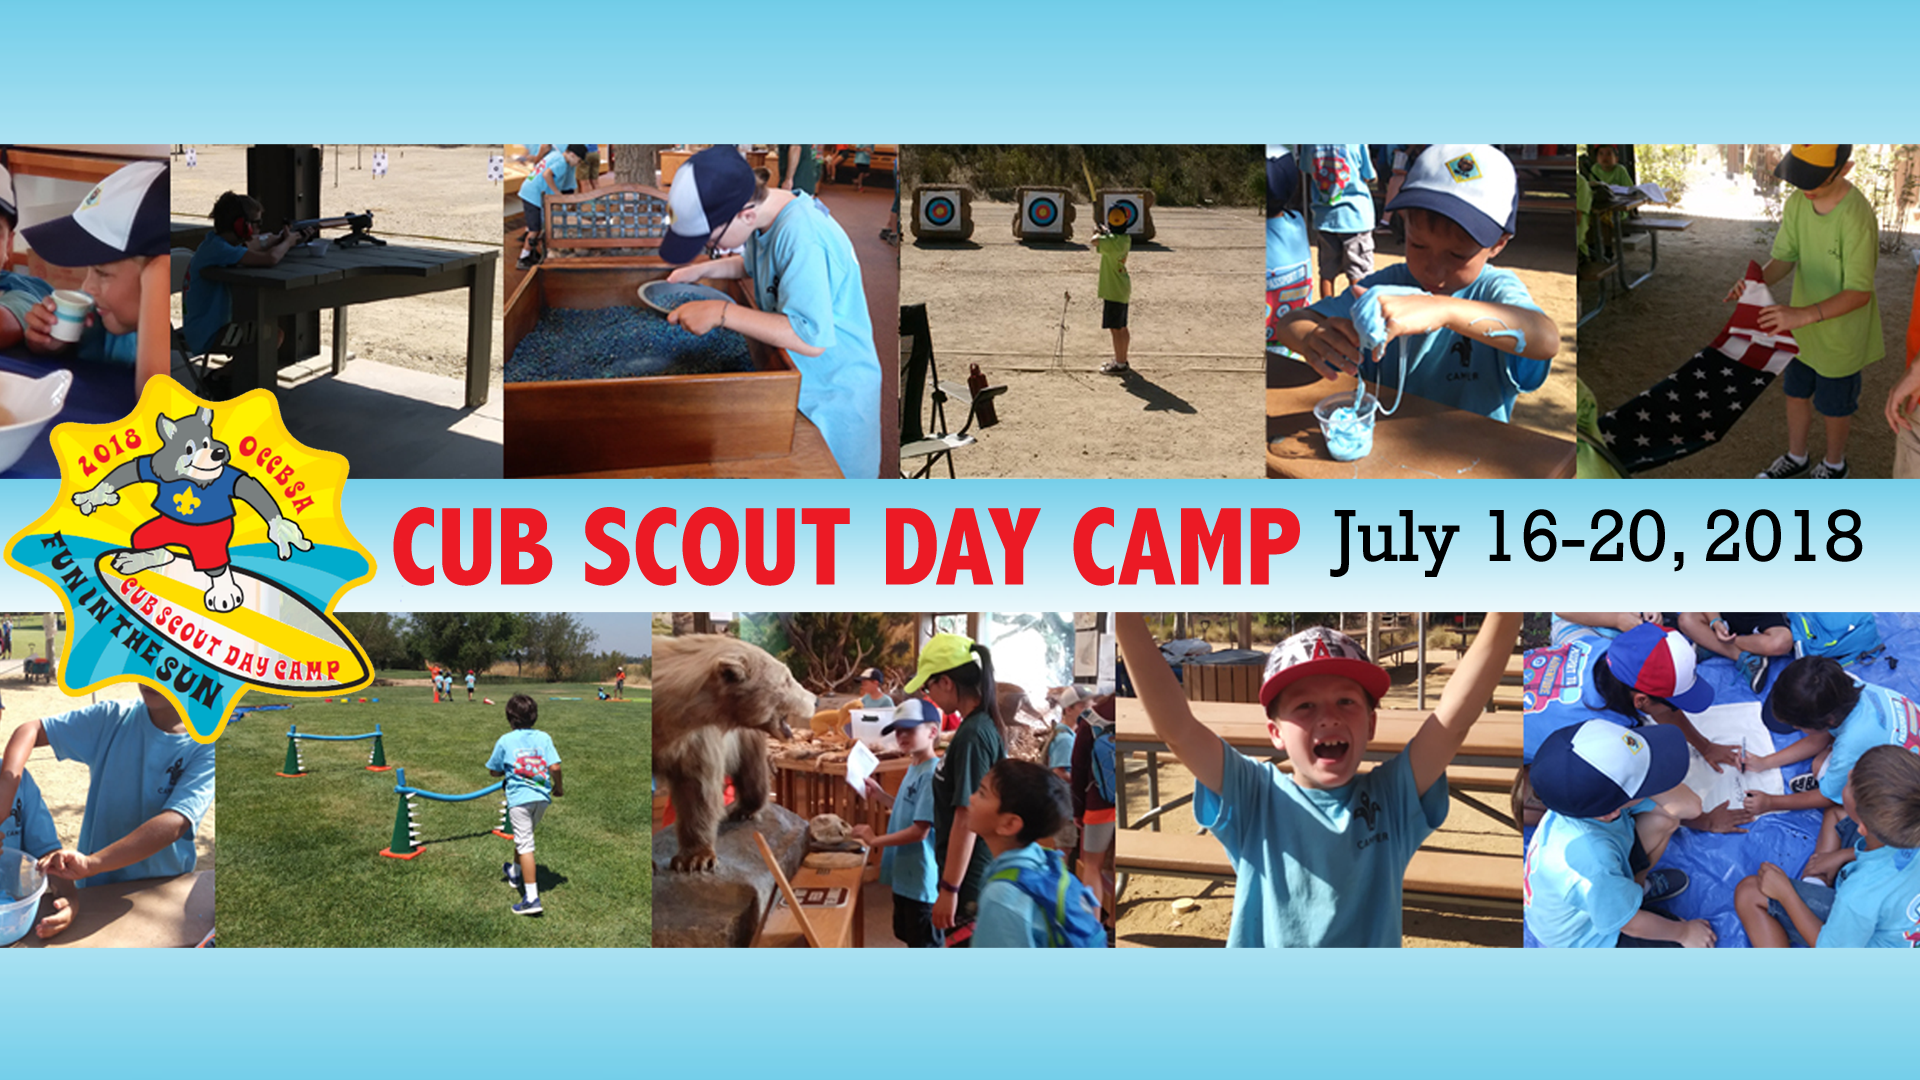 Cub Scout Summer Day Camp - June 16-20, 2018  Orange County